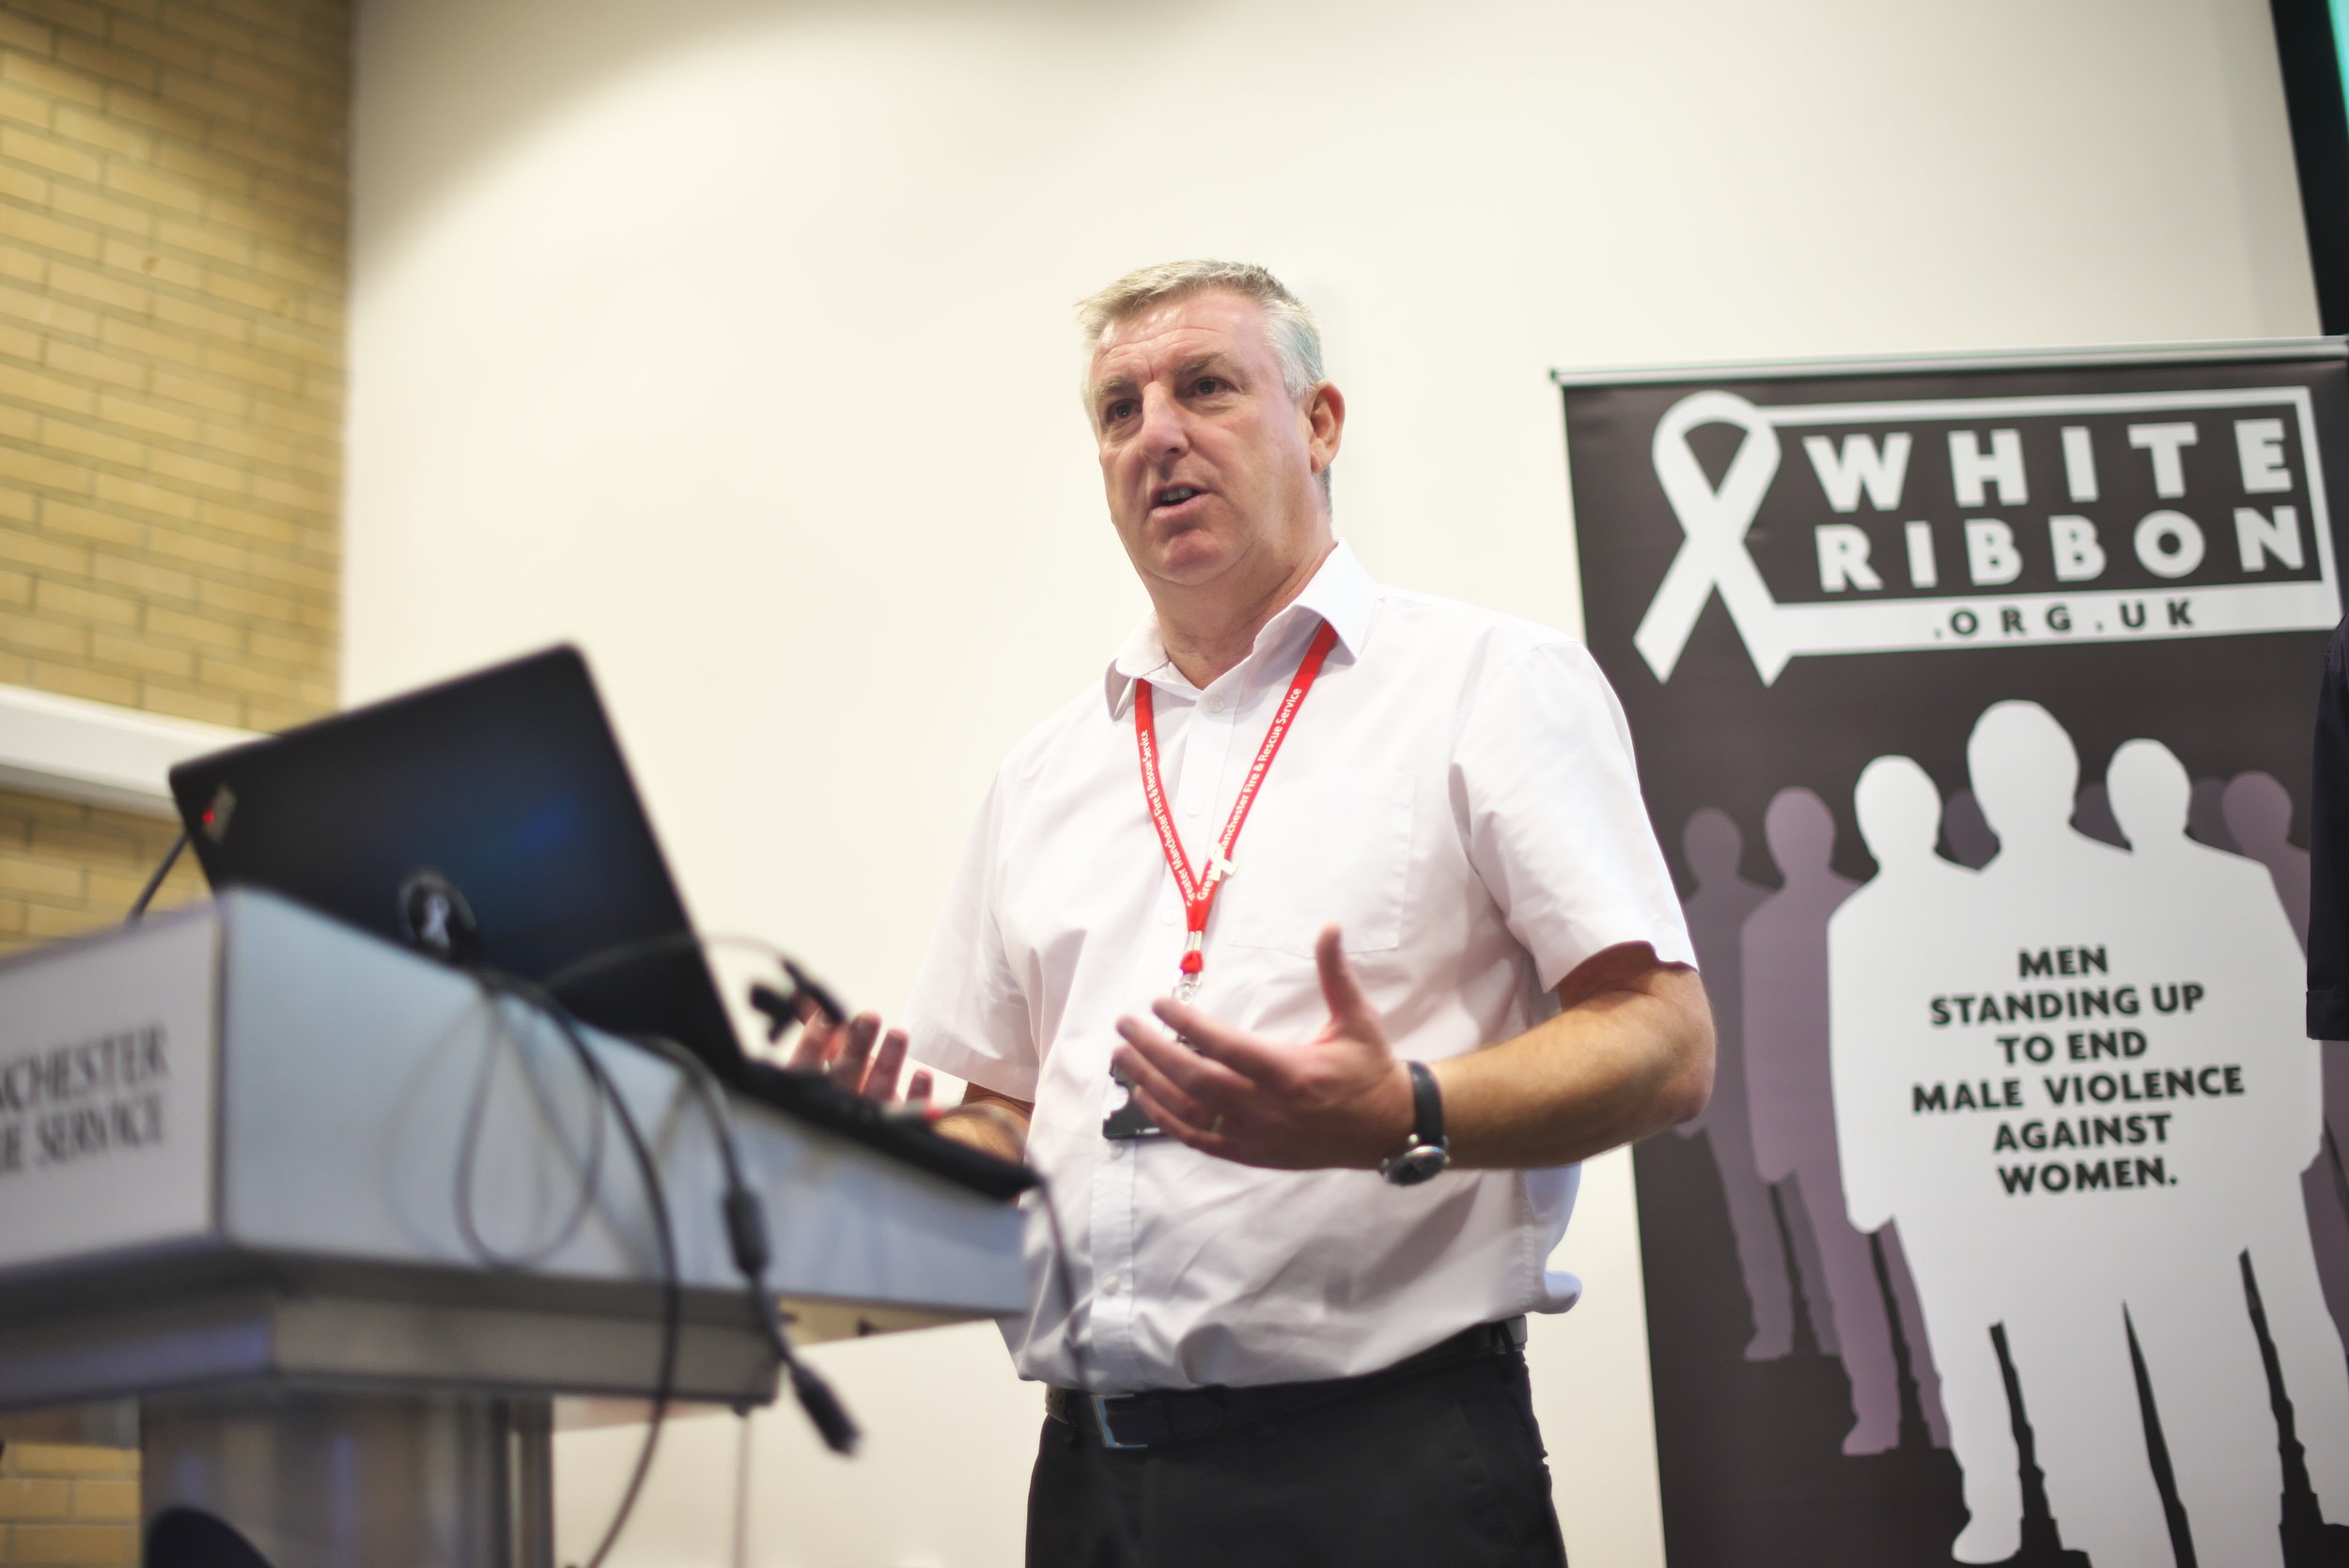 Andy Pownall speaking at the event on what it means to be an Ambassador for the campaign